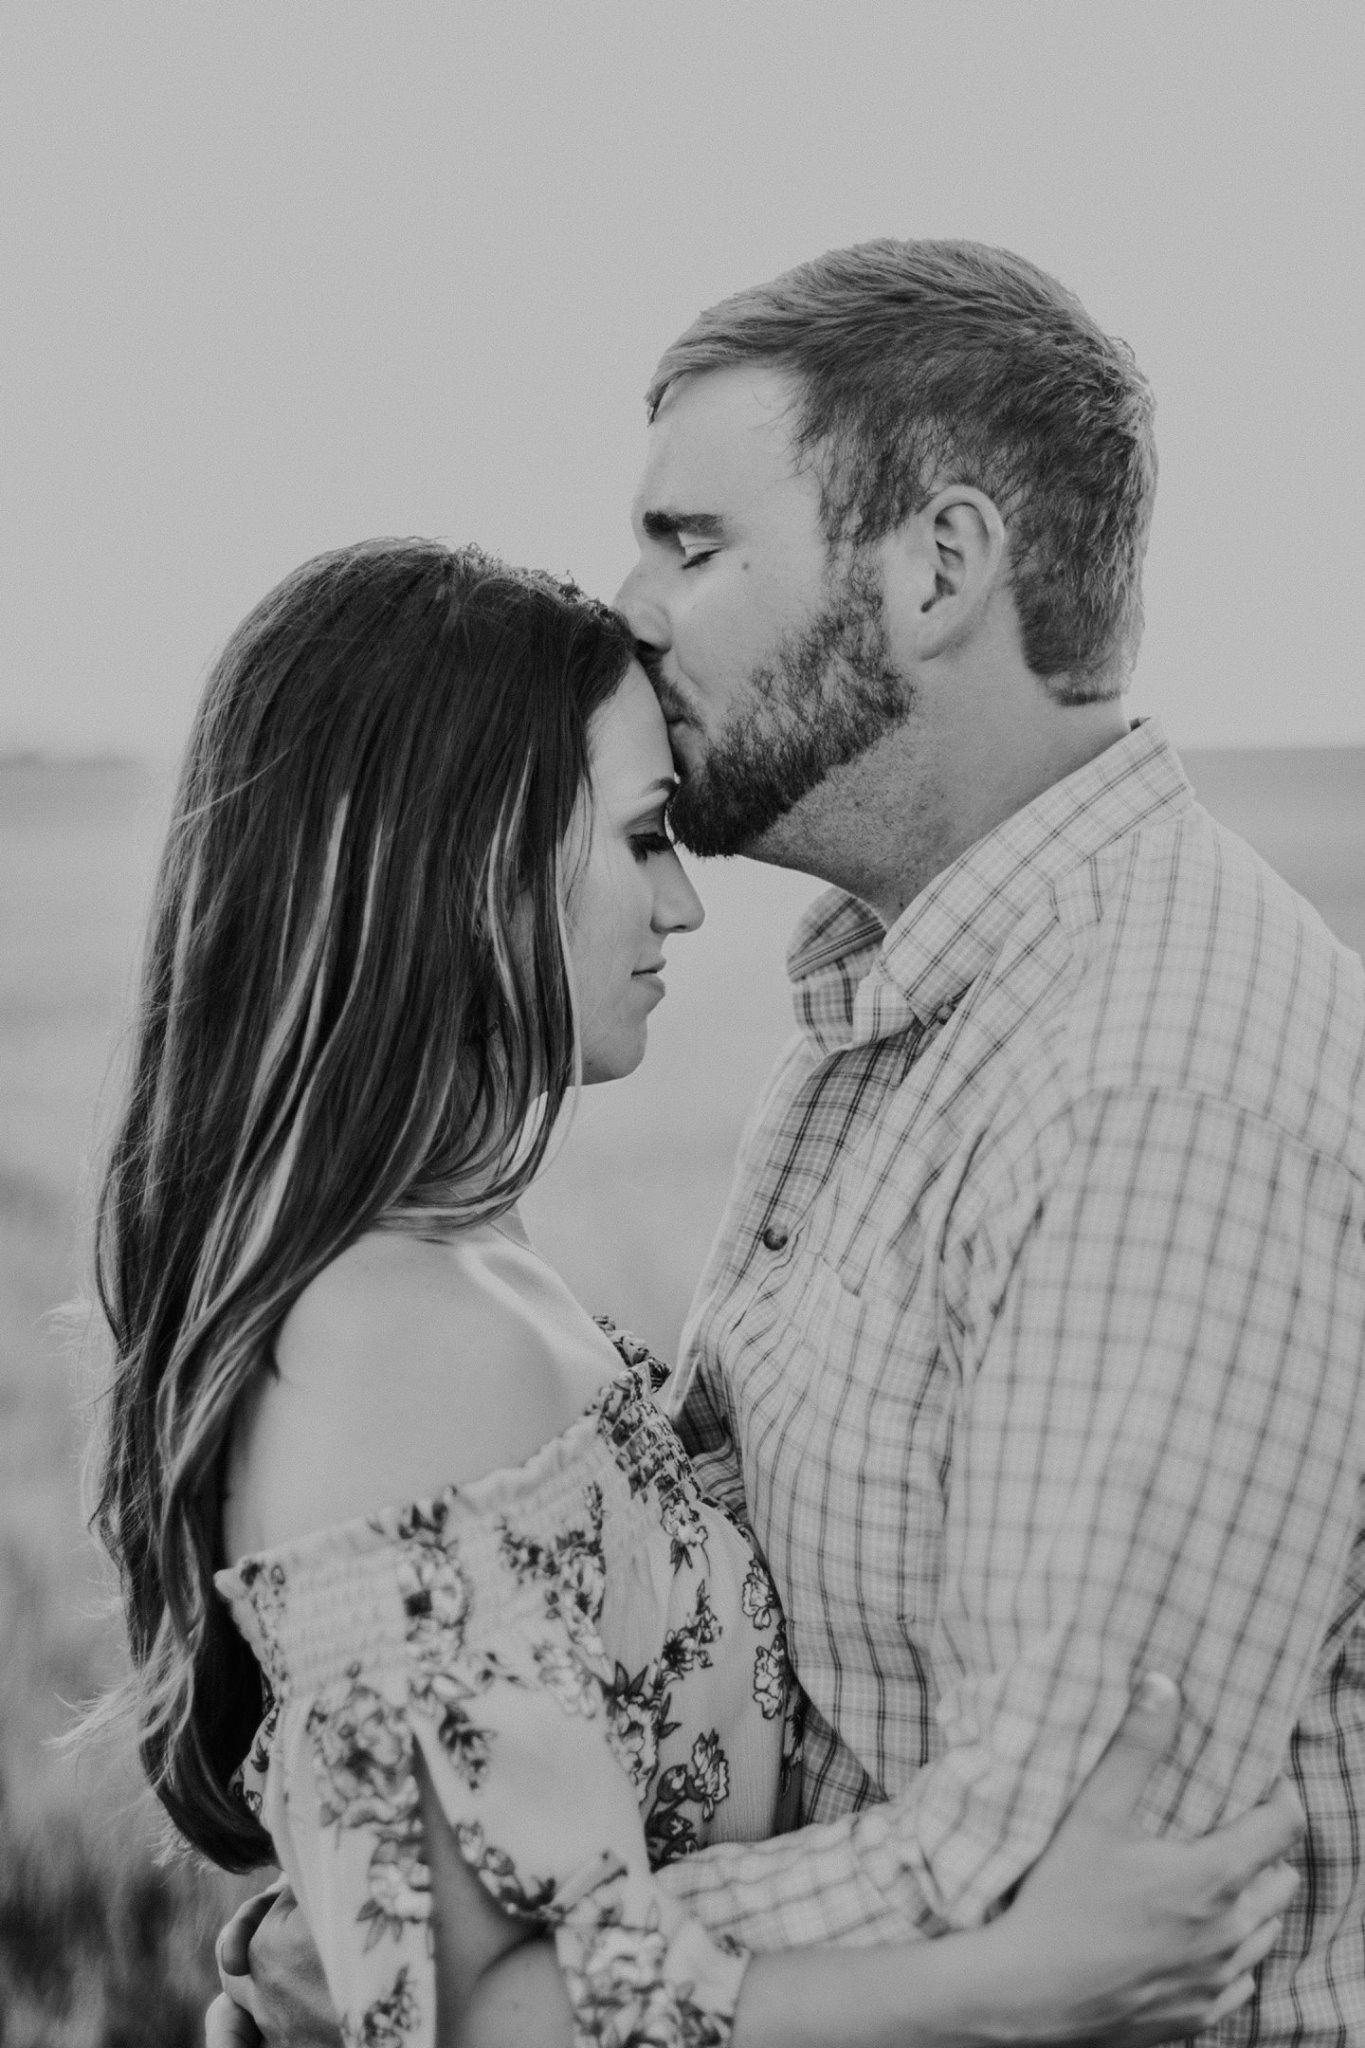 Forehead kiss black and white couples photography darrianmphotography com